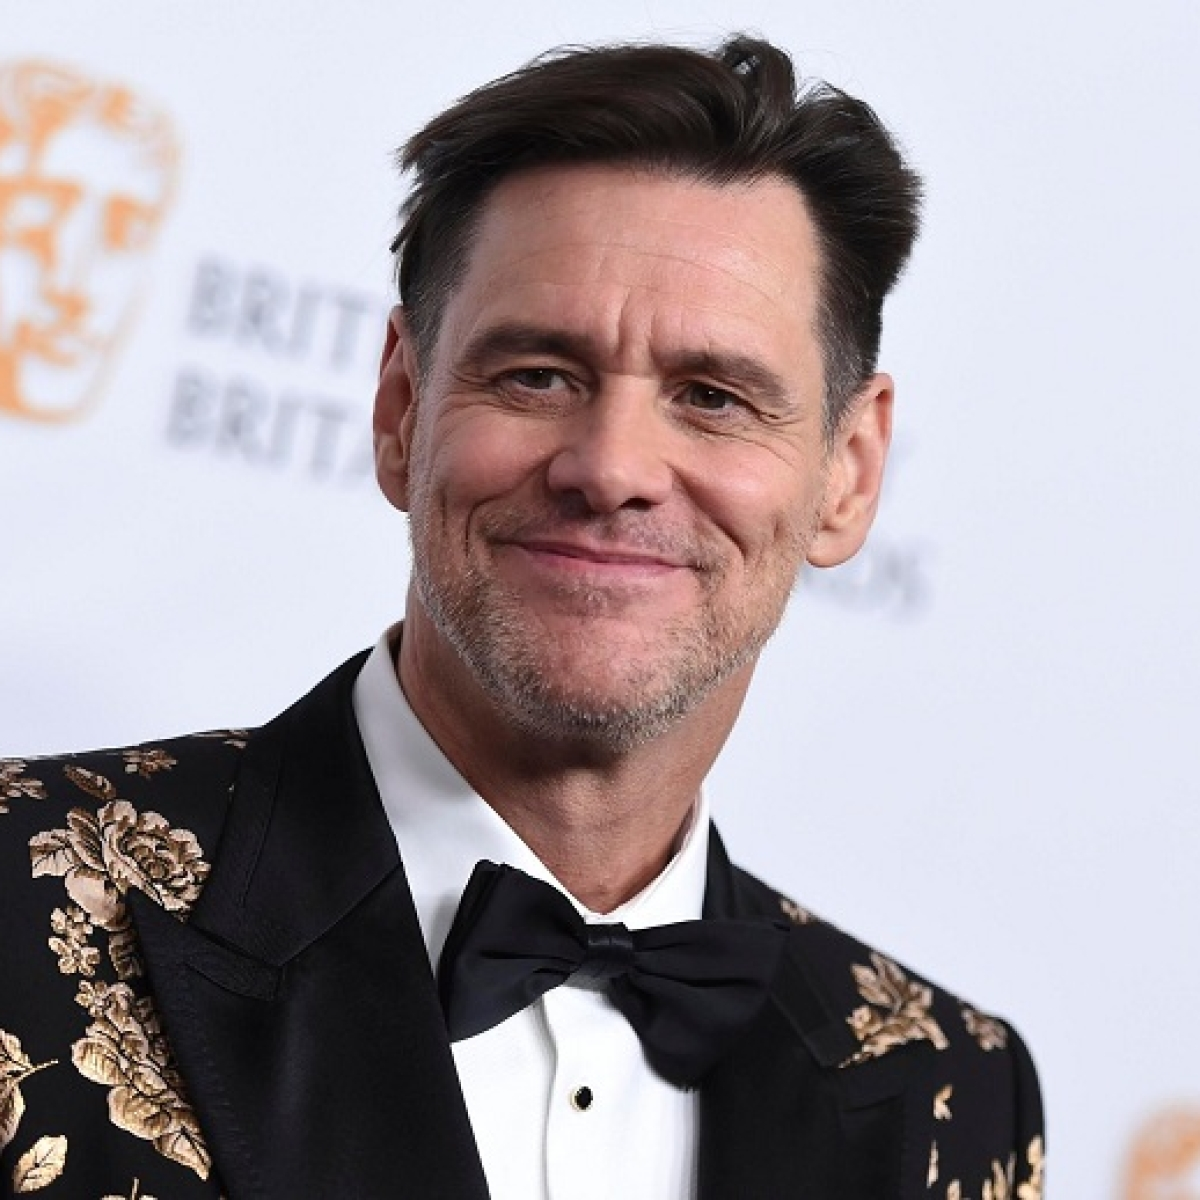 Jim Carrey to play Joe Biden on 'Saturday Night Live'